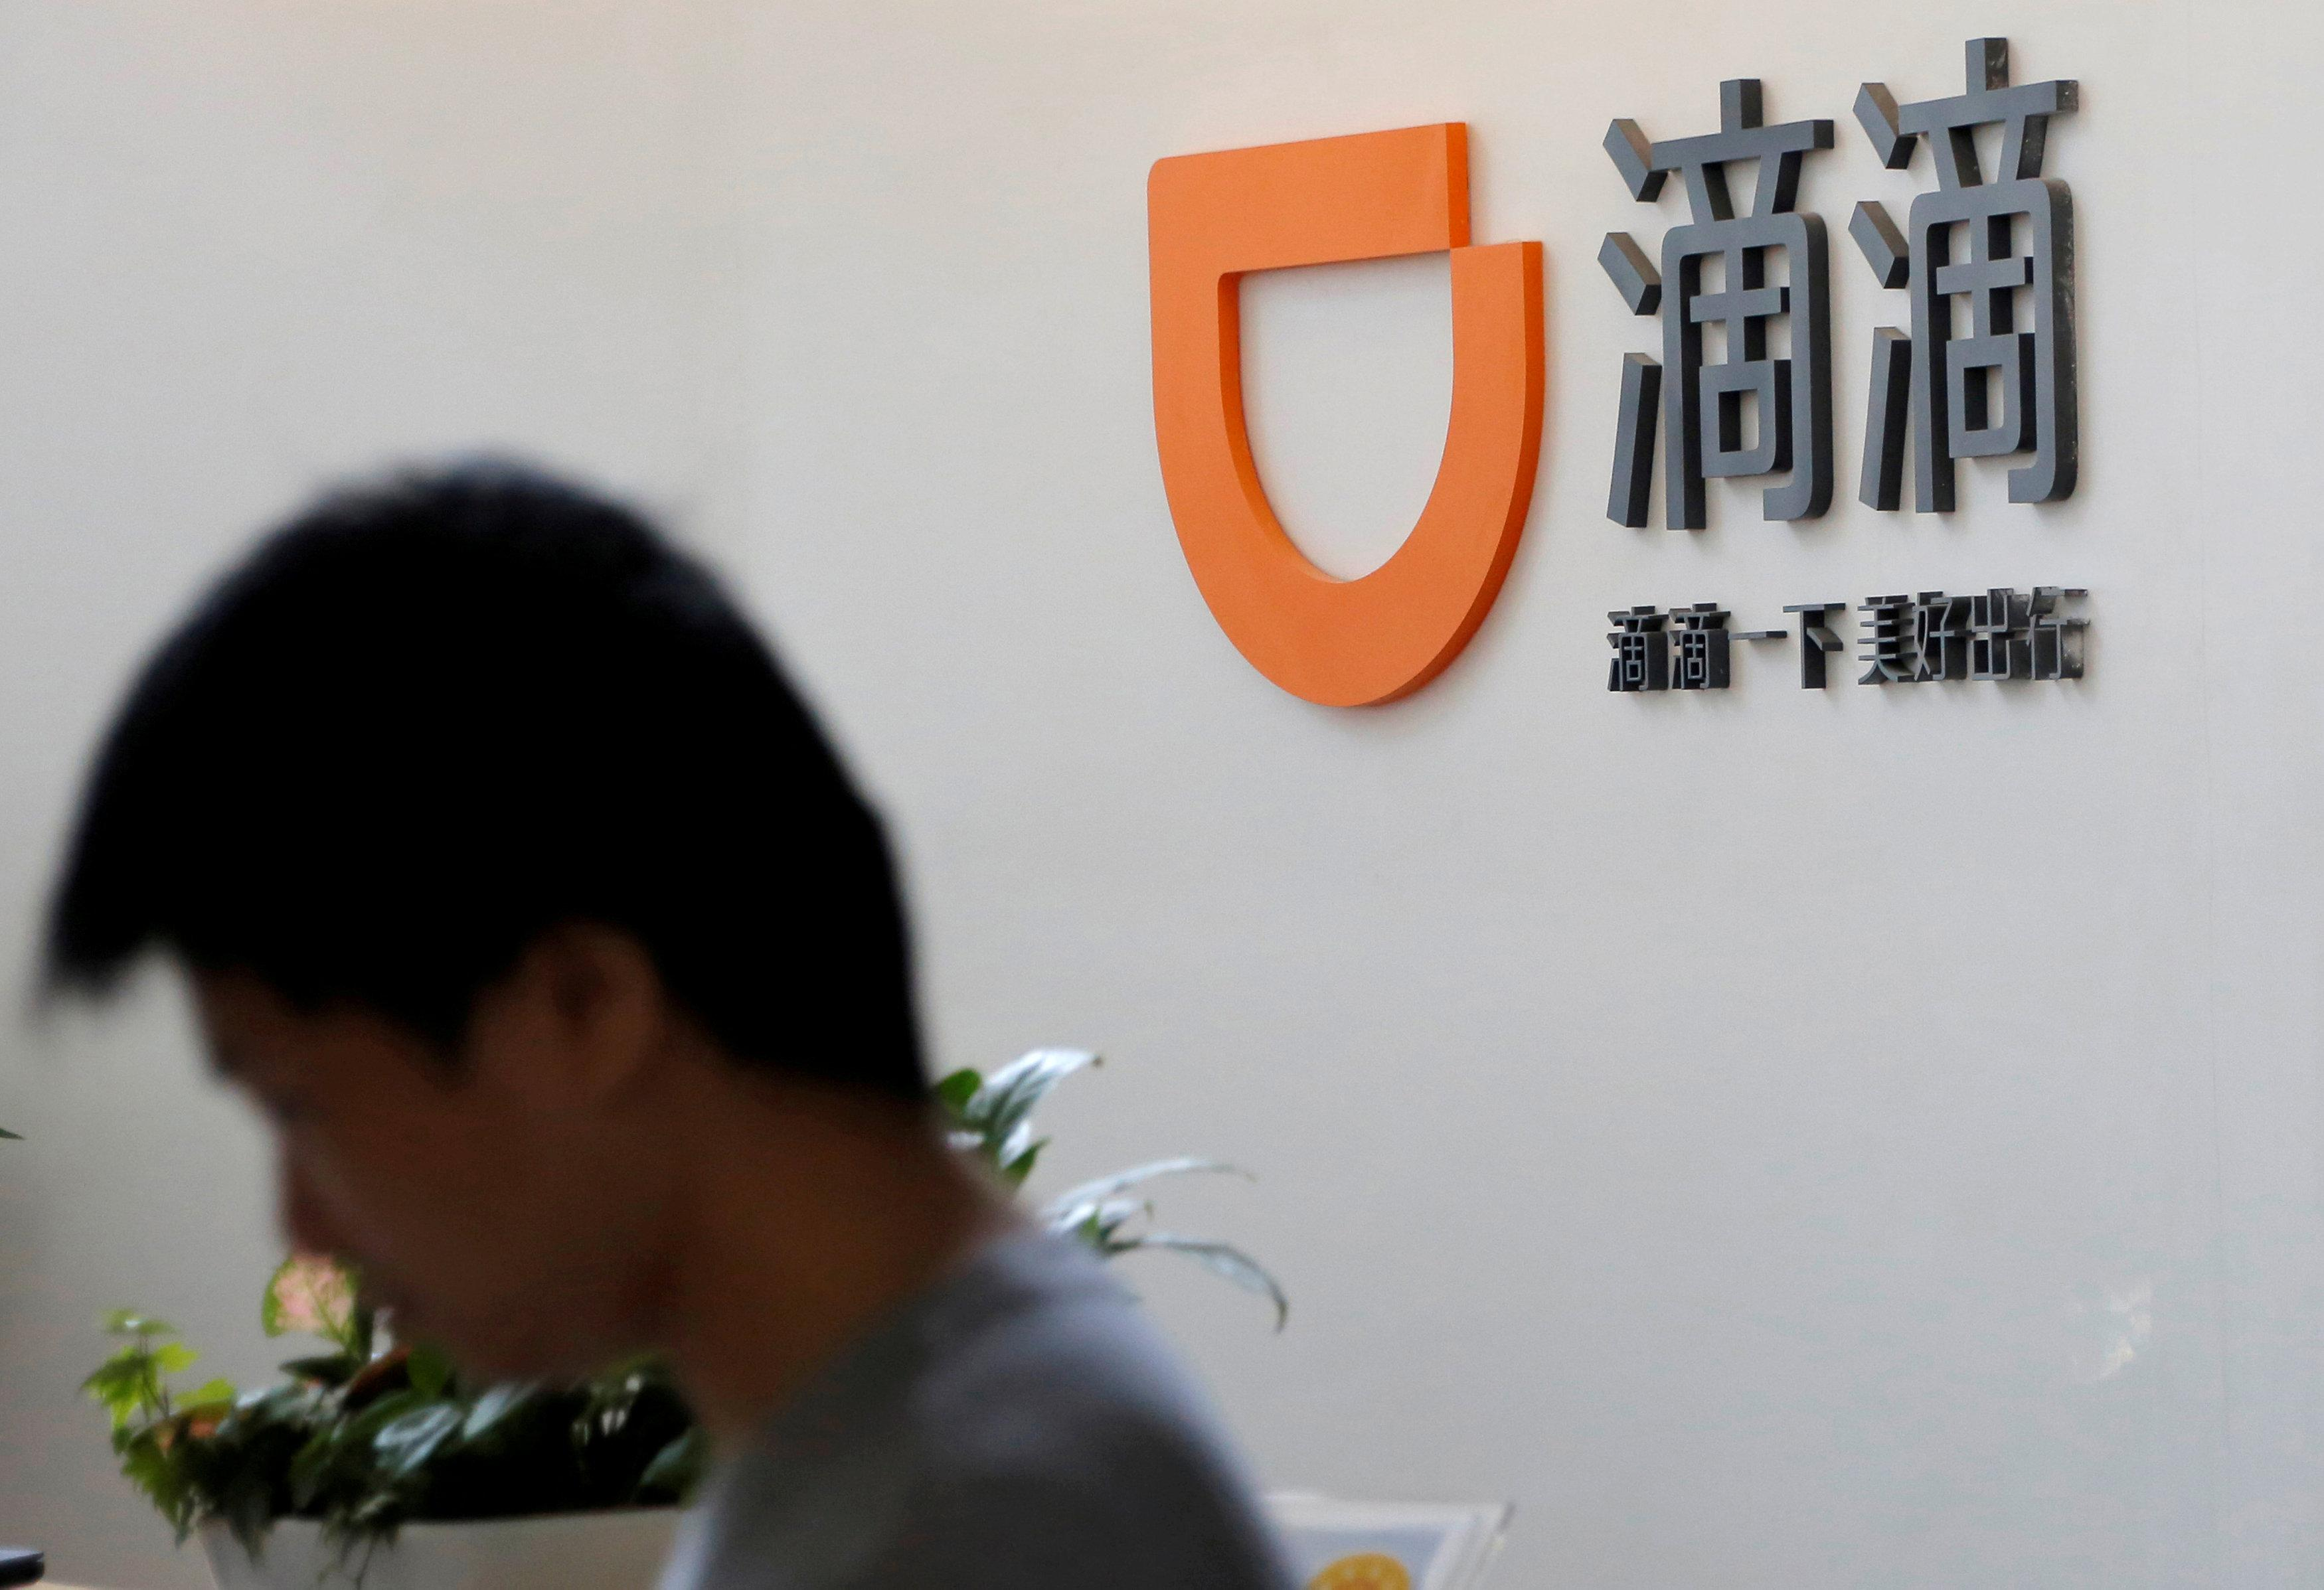 China's Didi apologizes after killing of passenger sparks safety fears